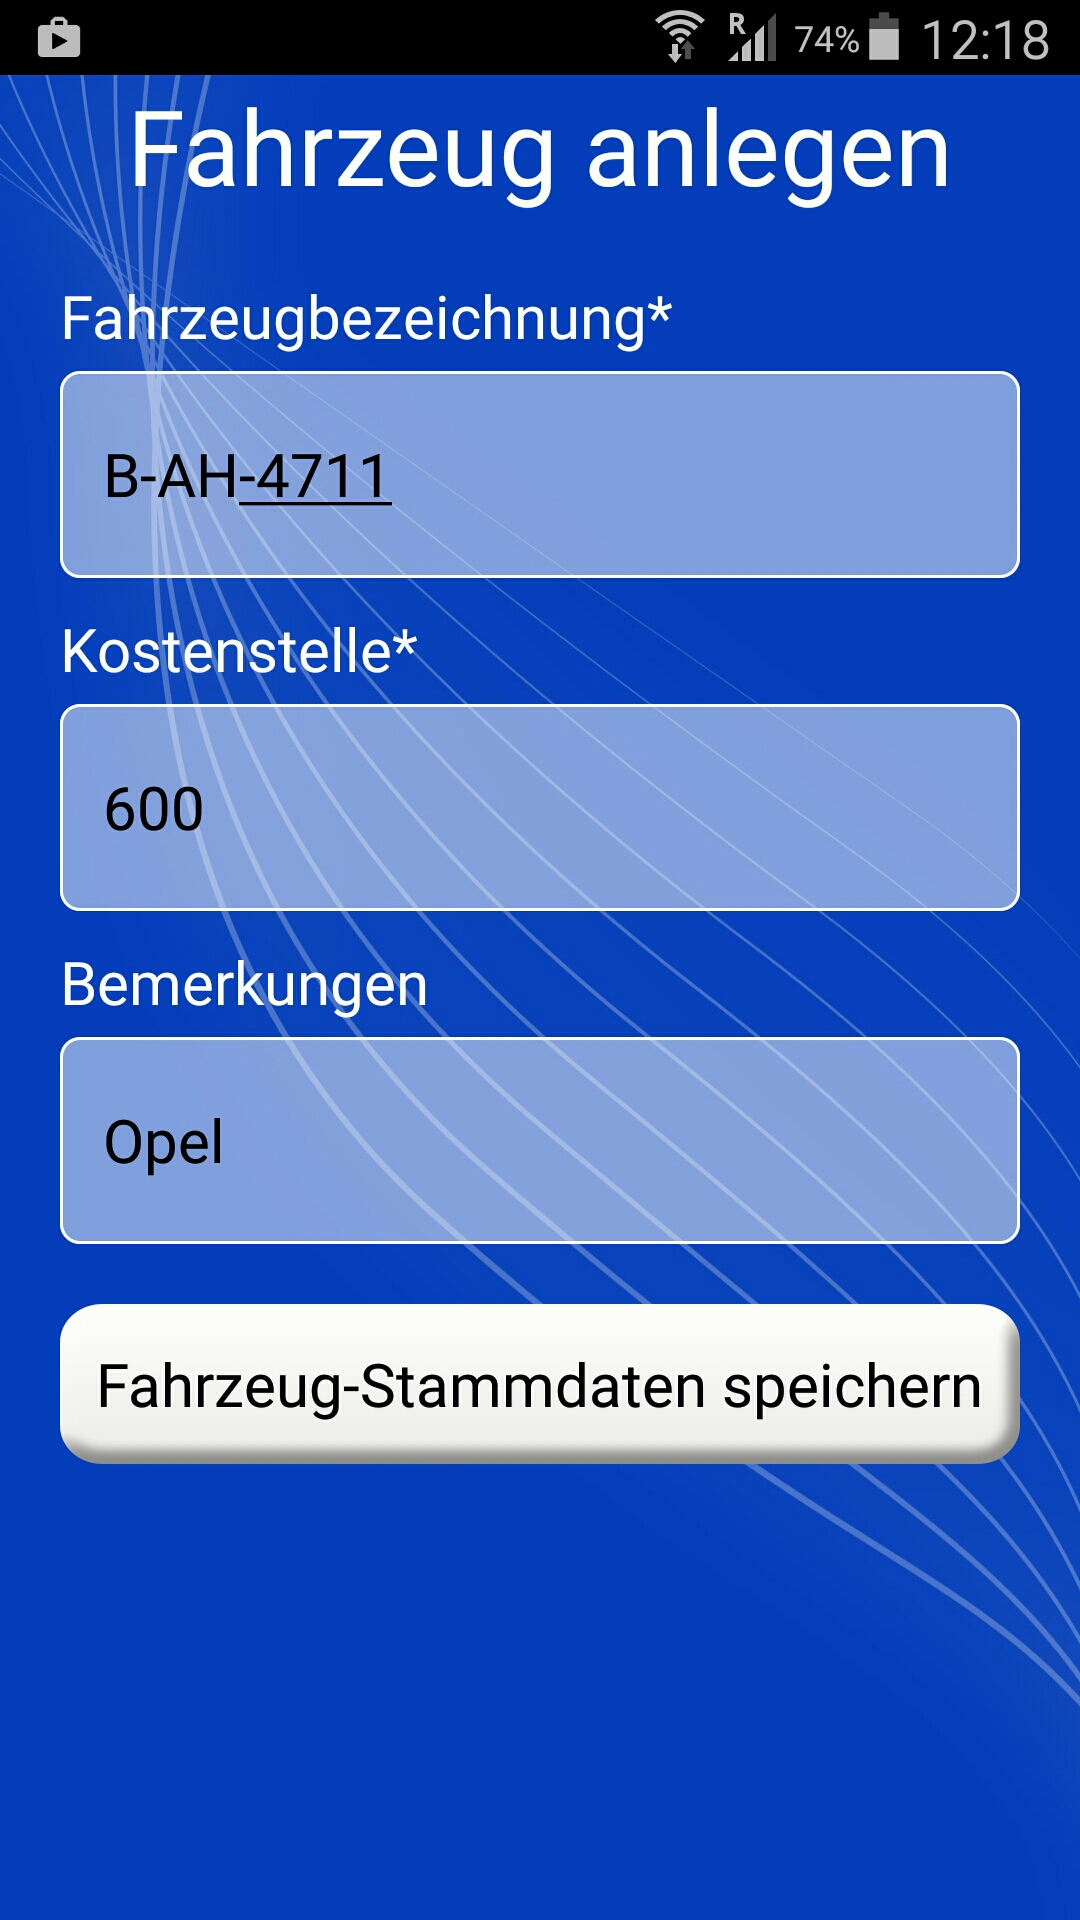 ginstr_app_busTransportationReport_DE_7